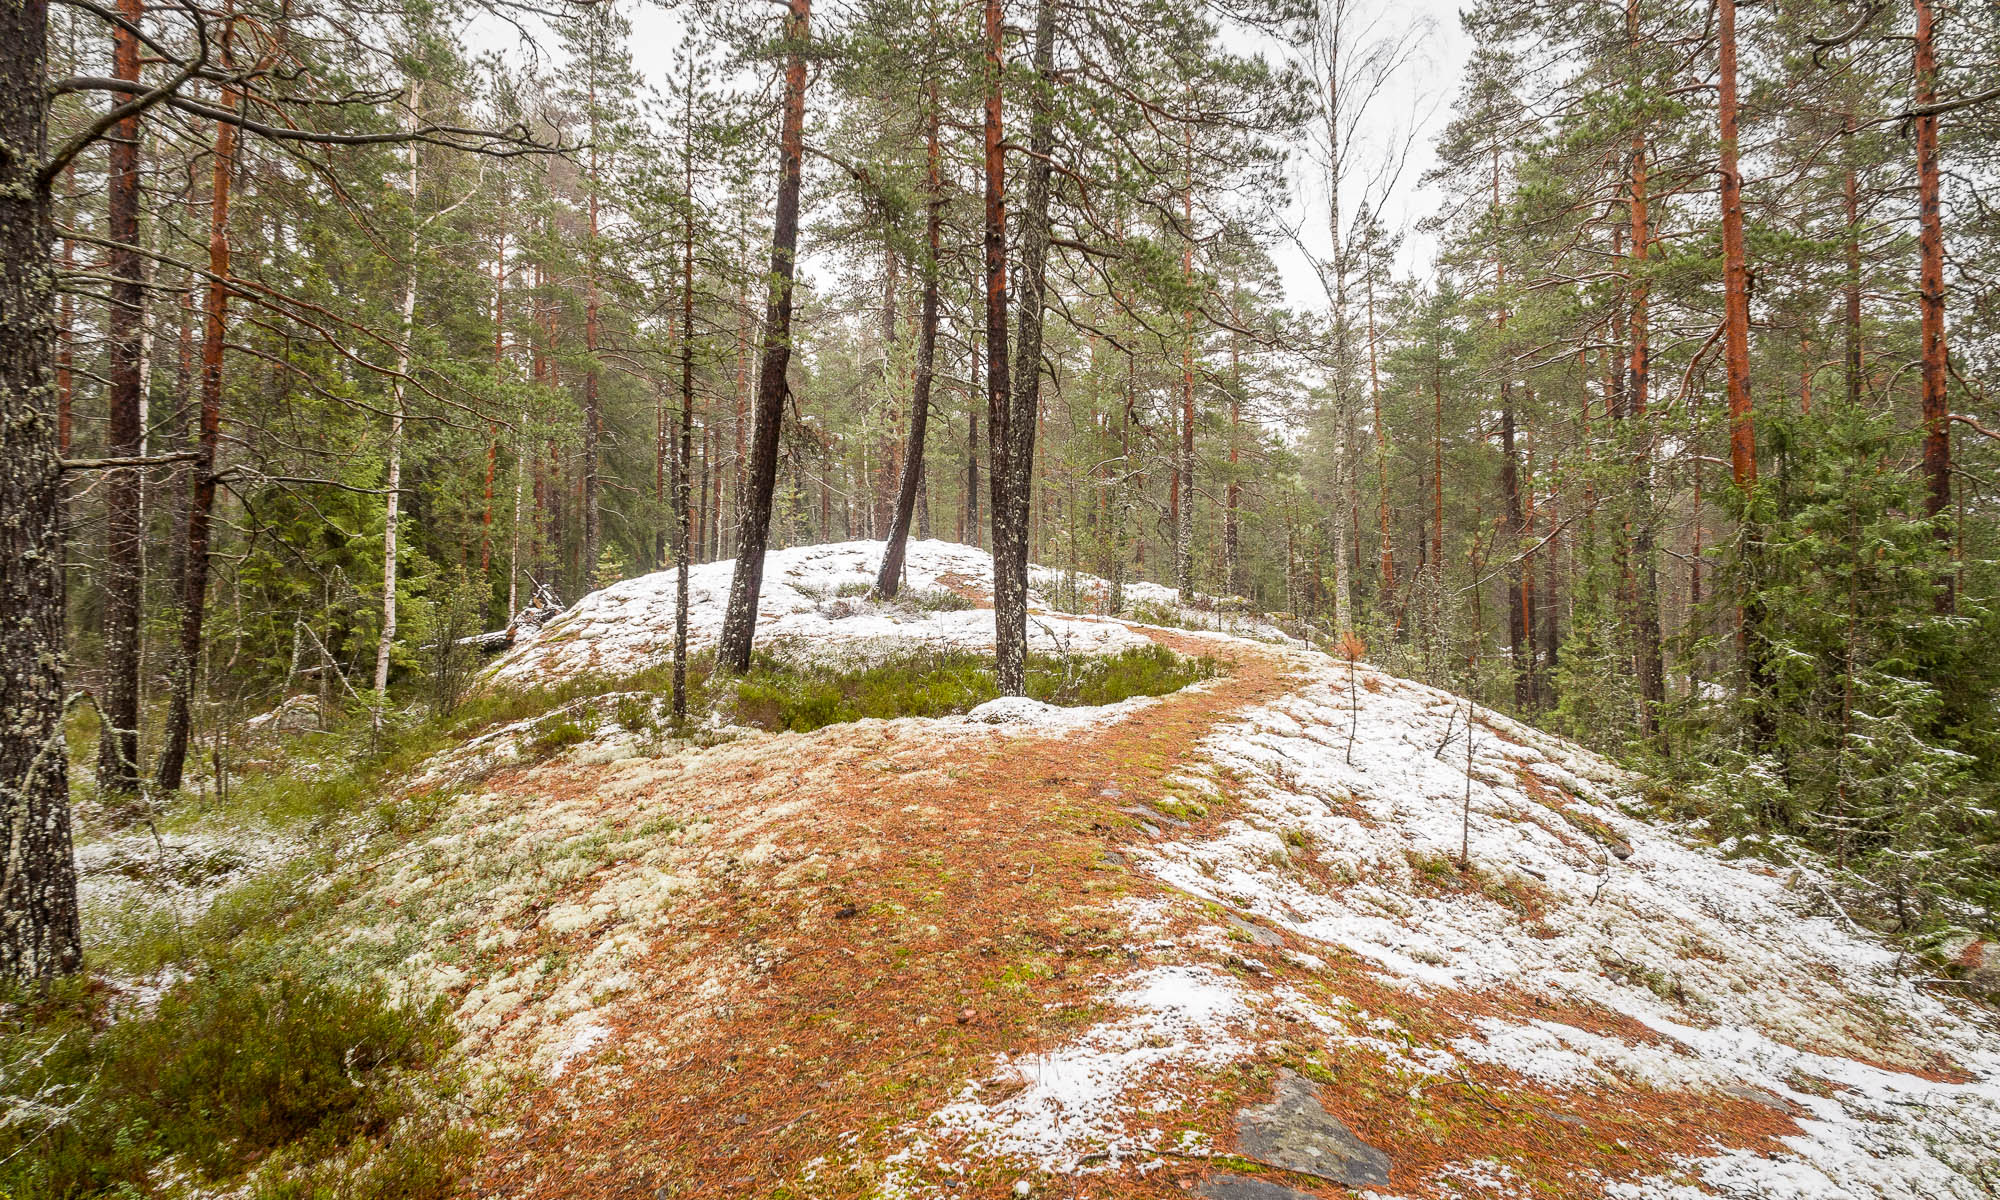 Nuuksio National Park in winter. Finnish nature when there's just a little bit of snow. Nature near Helsinki, Finland.